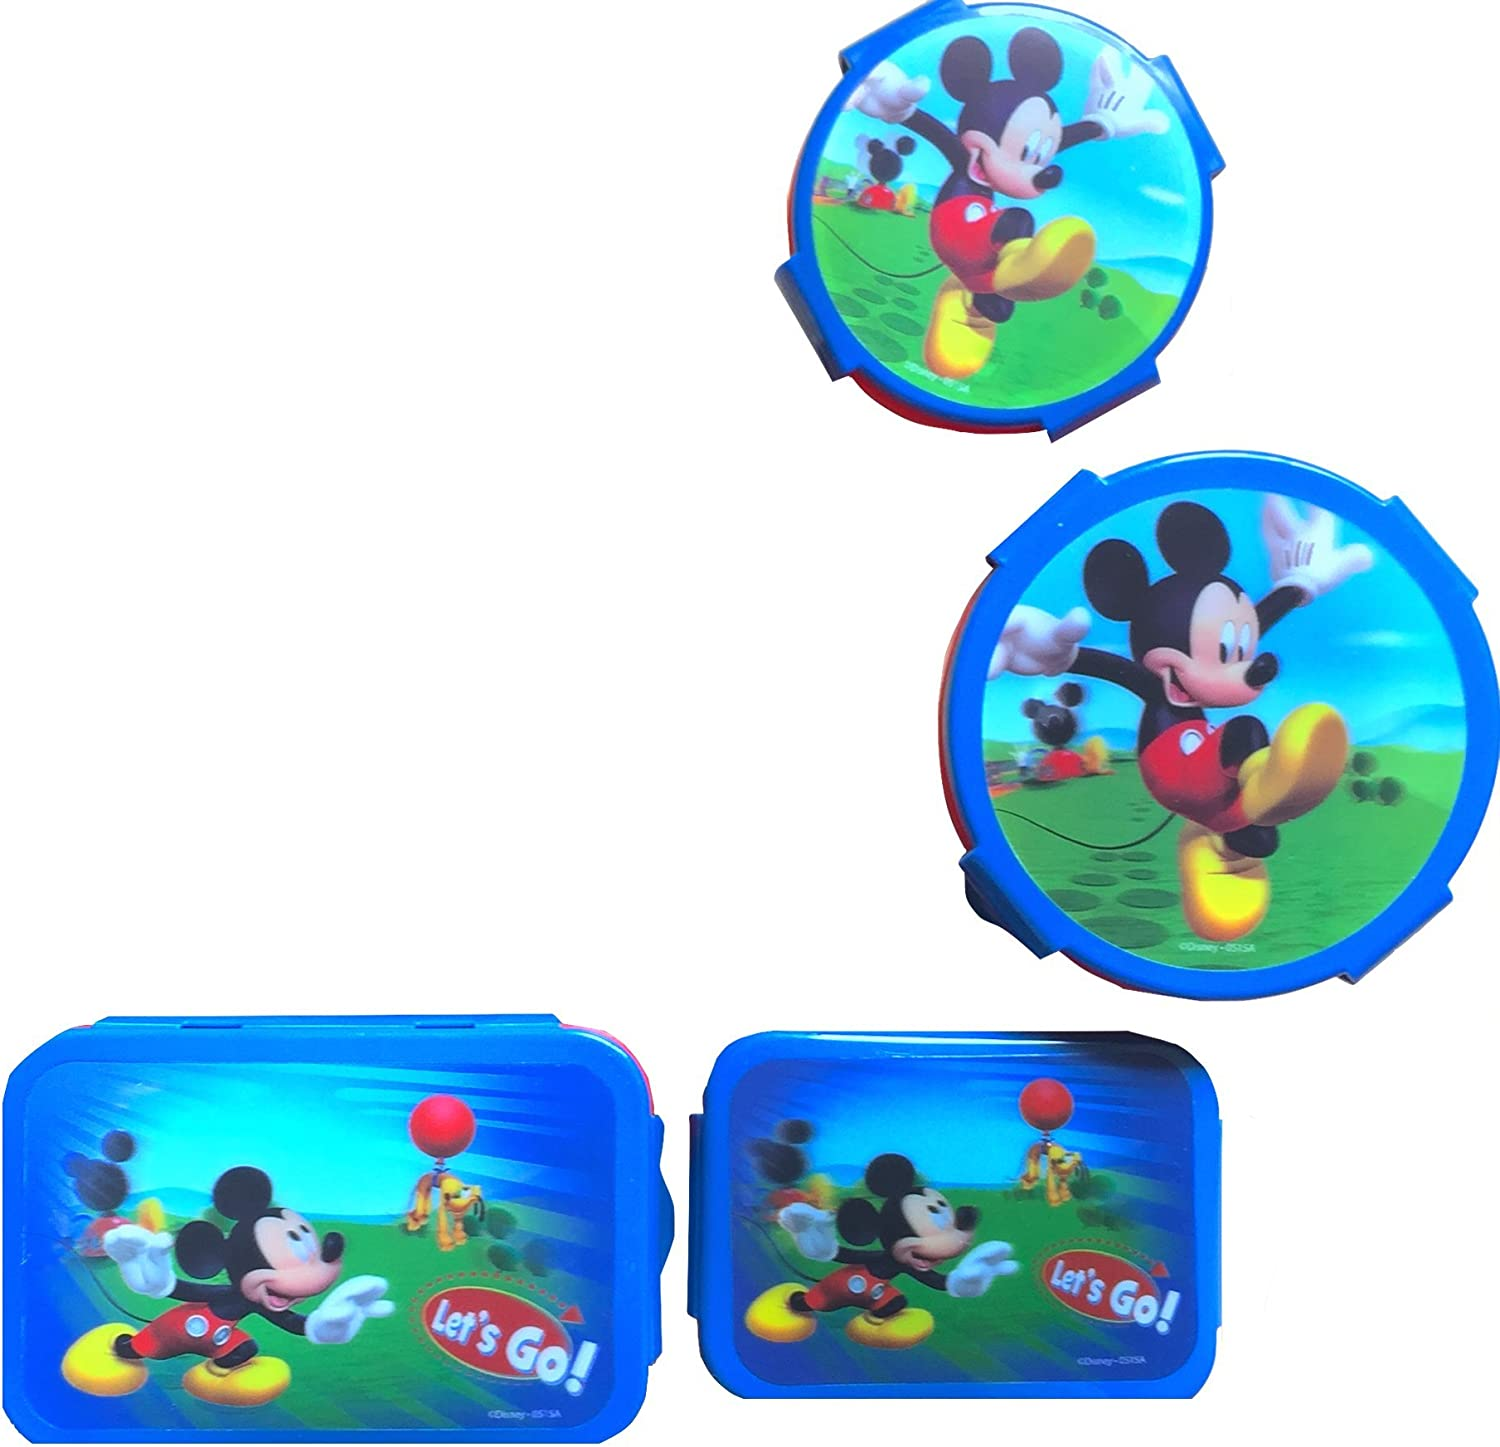 Disney Mickey Mouse Clubhouse Children/'s Backpack /& Lunch Box With 5 Pc Lunch Kit